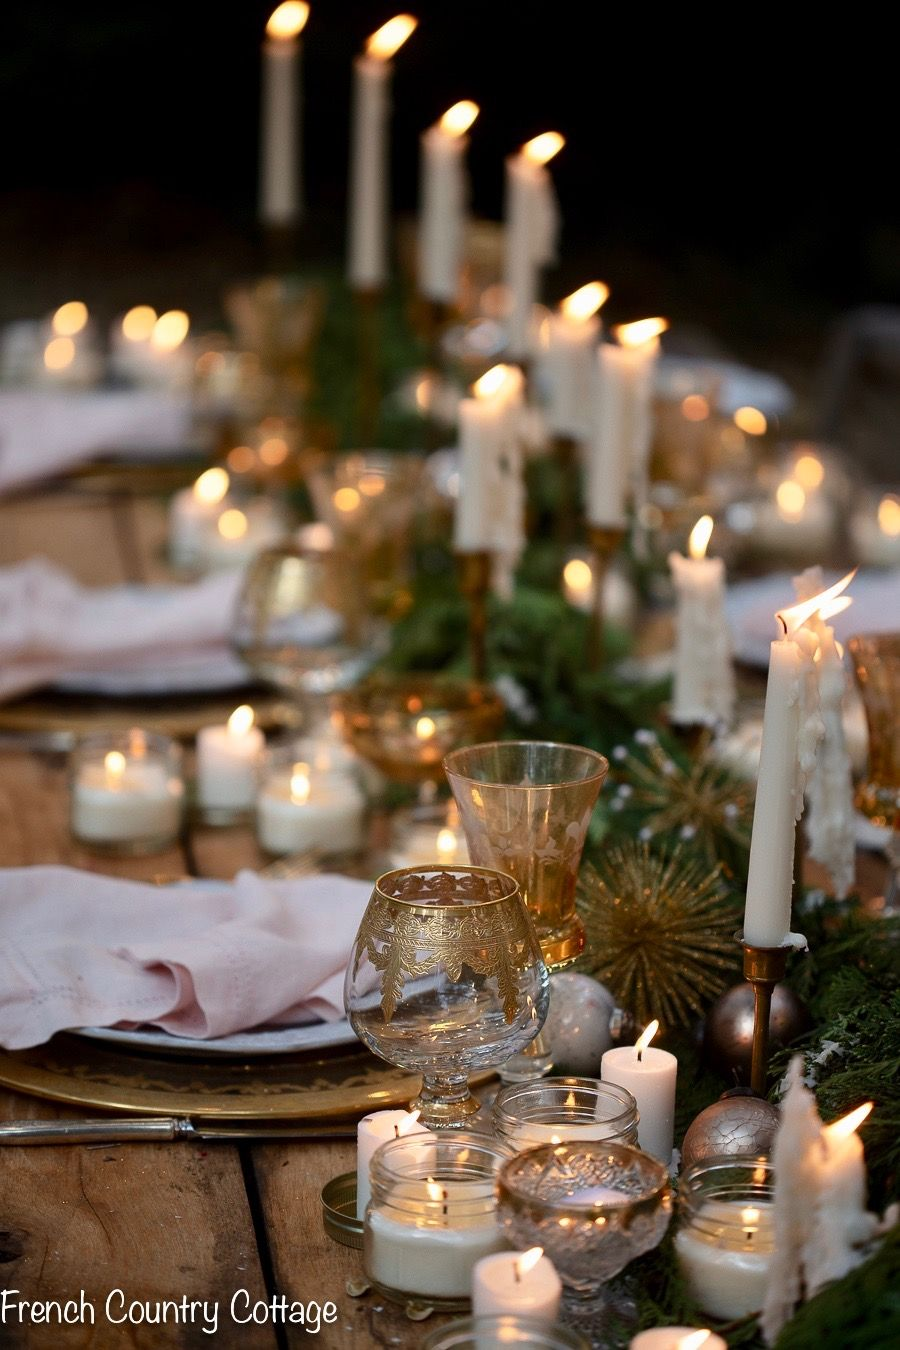 How To Add Country Style Charm To Summer Entertaining French Country Cottage French Country Cottage Summer Decor Christmas Tablescapes